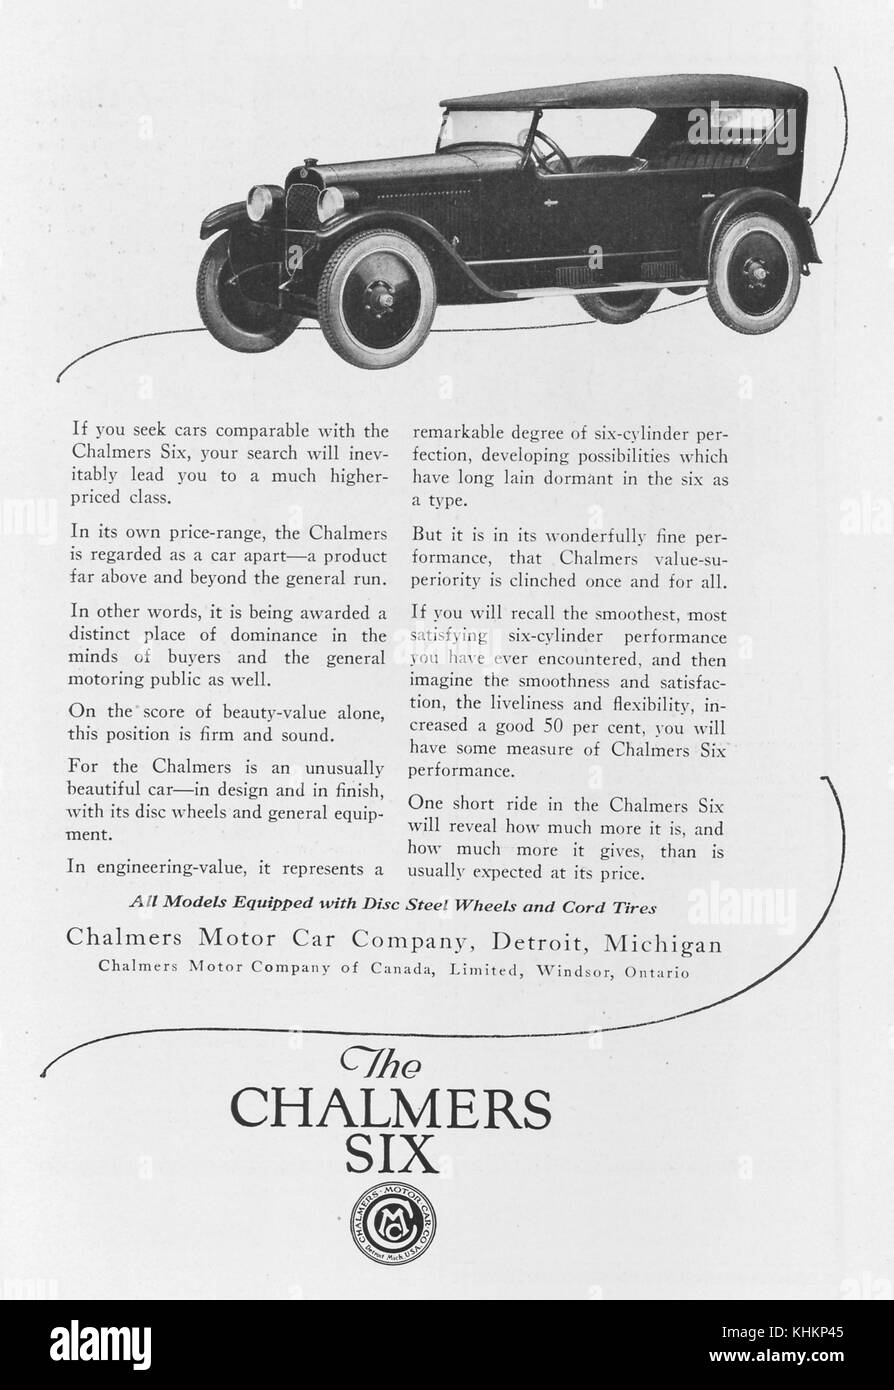 Full page advertisement for the Chalmers Six car model, by the Chalmers Motor Car Company of Detroit, Michigan, - Stock Image